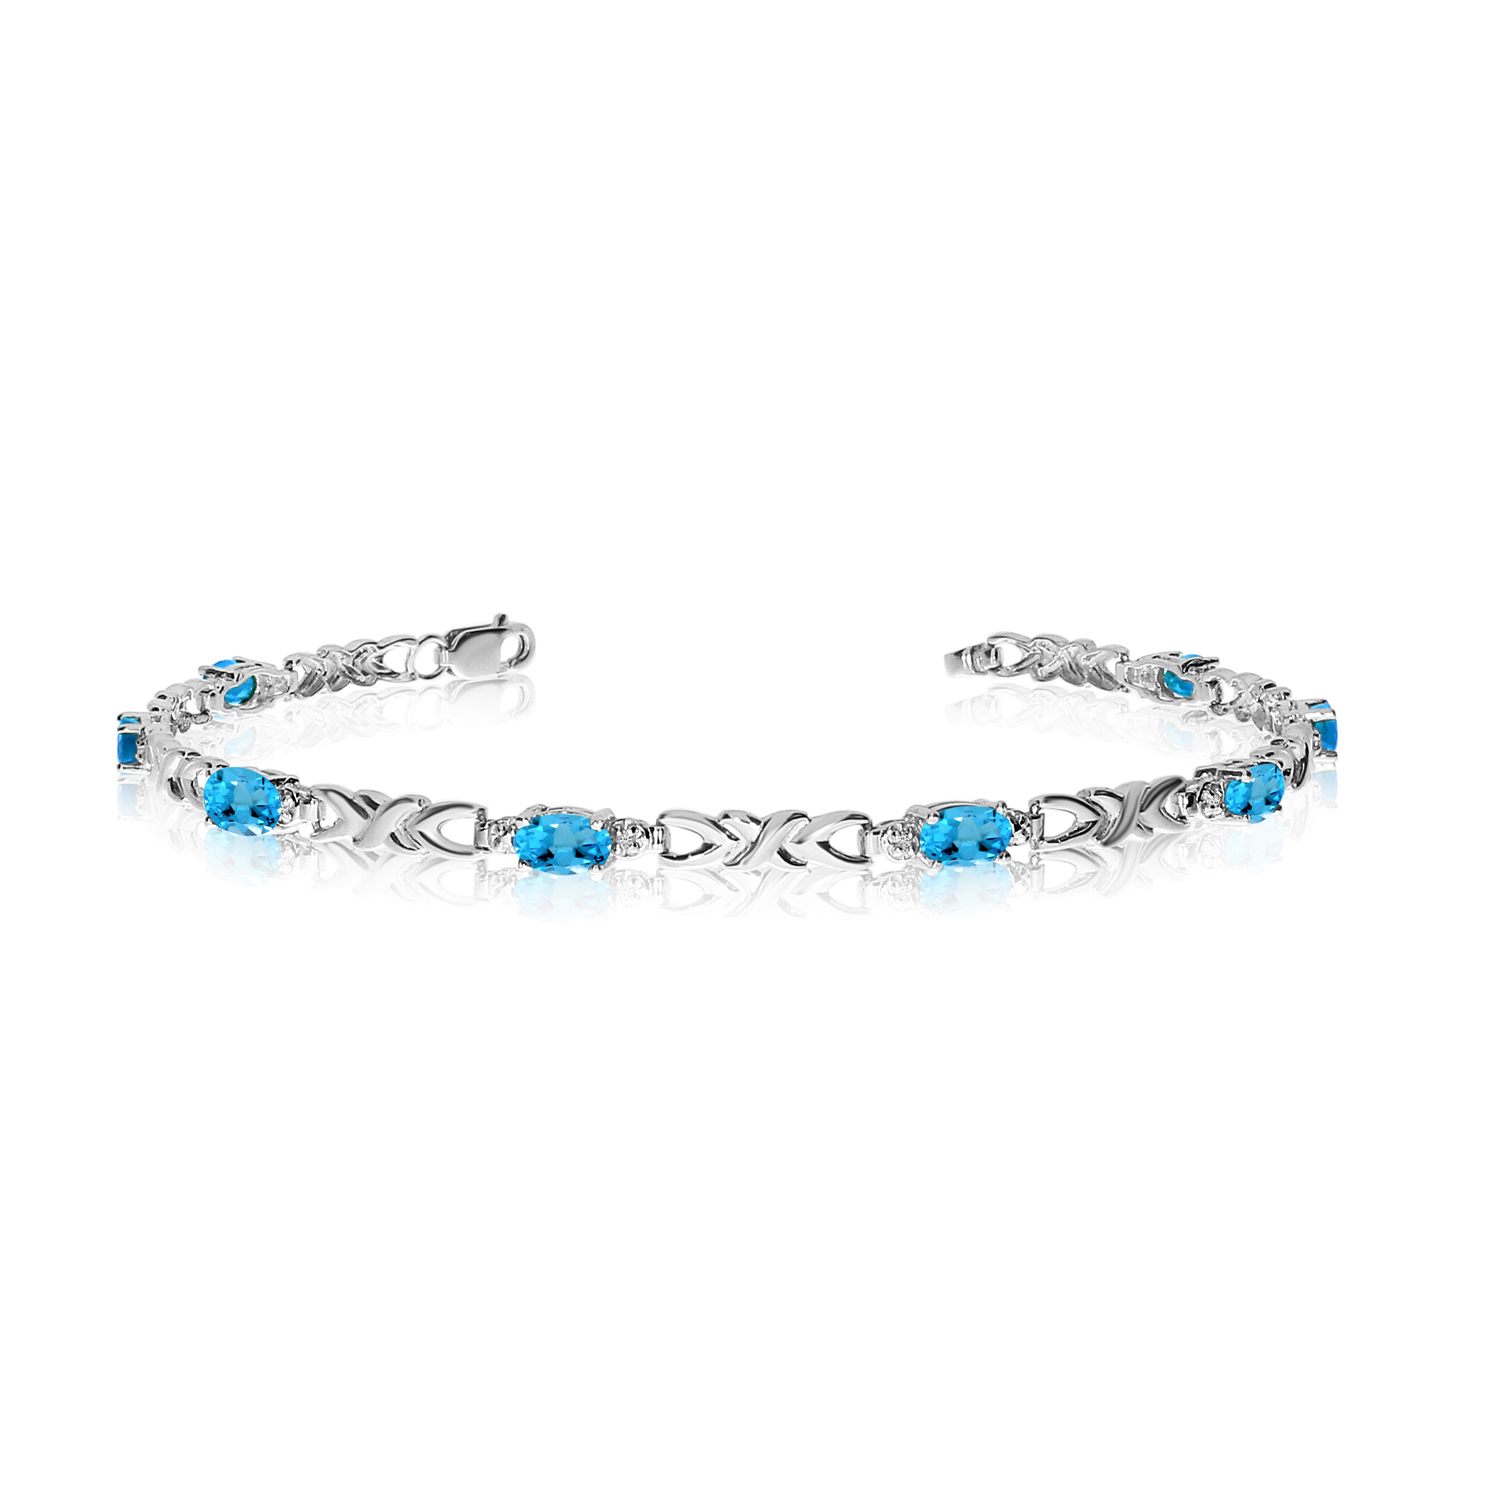 10K White Gold Oval Blue Topaz and Diamond Bracelet by